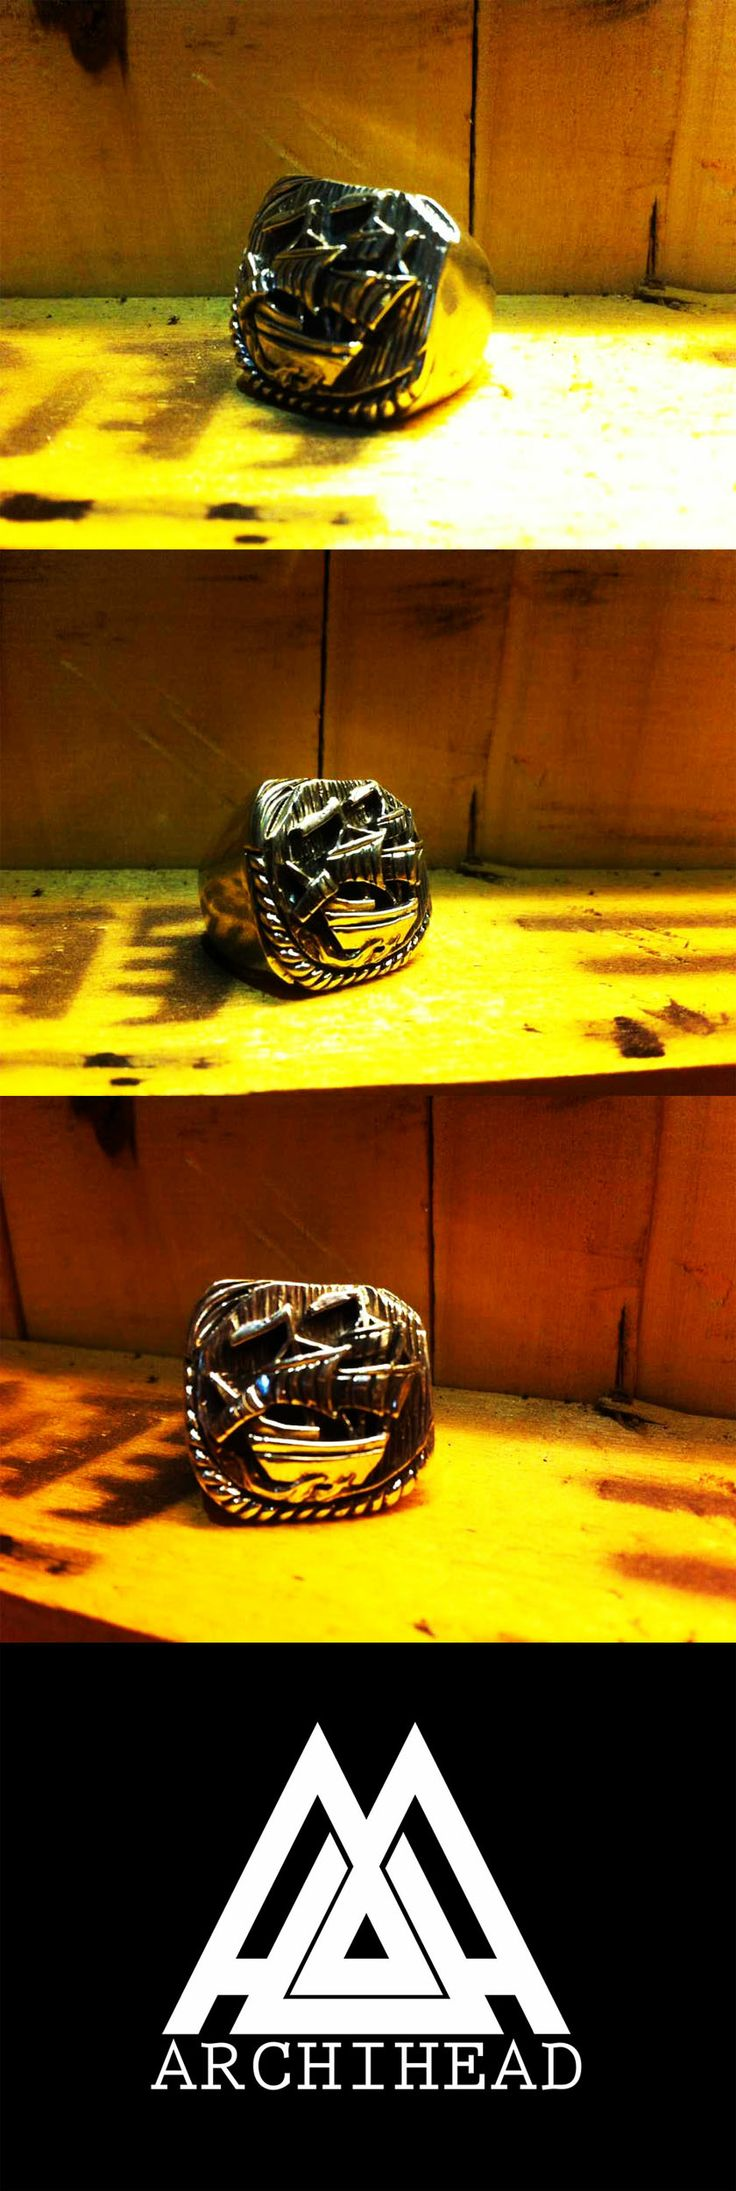 ARCHIHEAD Rings (shape) Archiheadproject@gmail.com